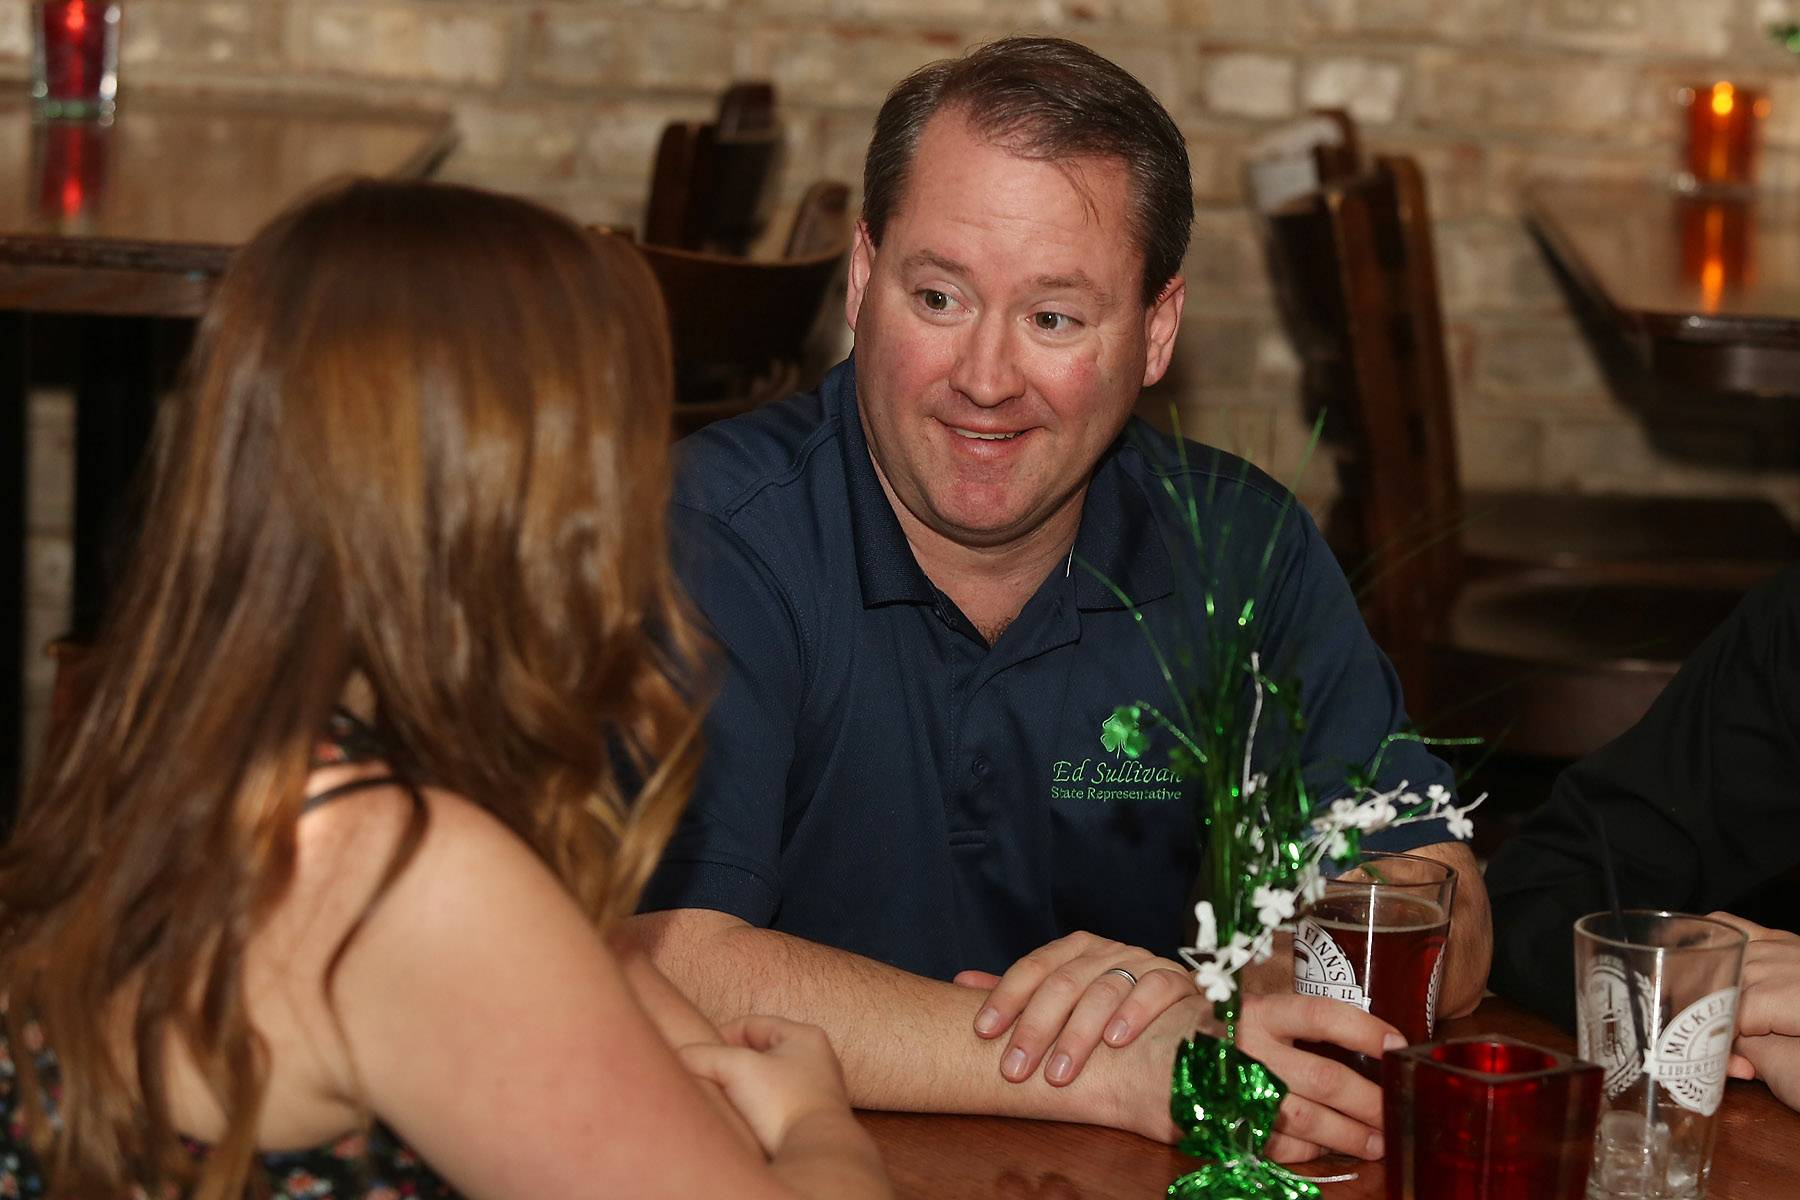 51st State House candidate Ed Sullivan Jr. smiles as he talks about the primary election with his niece, Jessica Gallimore, at Mickey Finn's in Libertyville. Sullivan's opponent  was Bob Bednar.